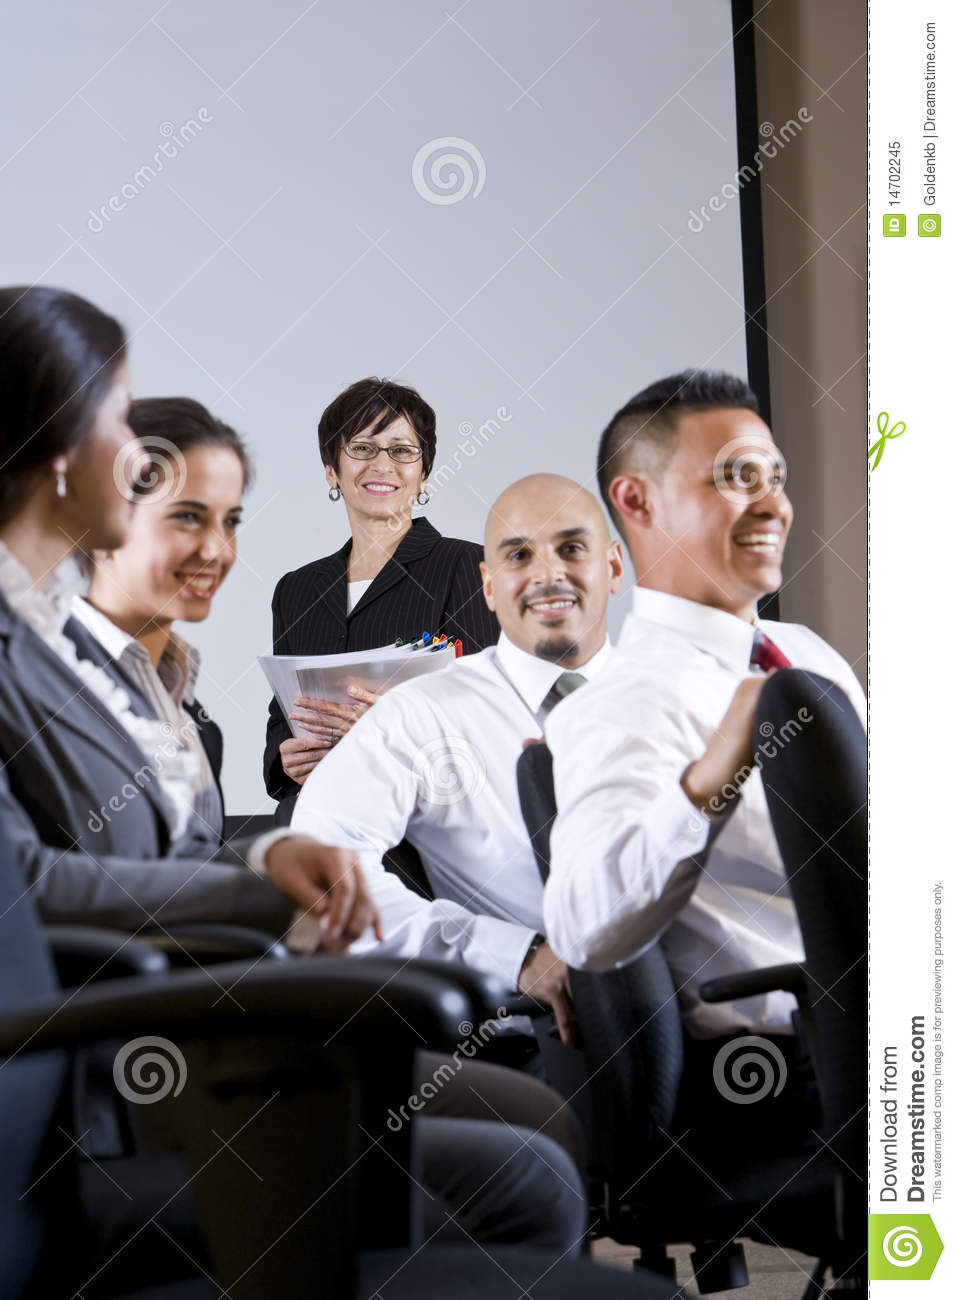 Diverse group businesspeople watching presentation